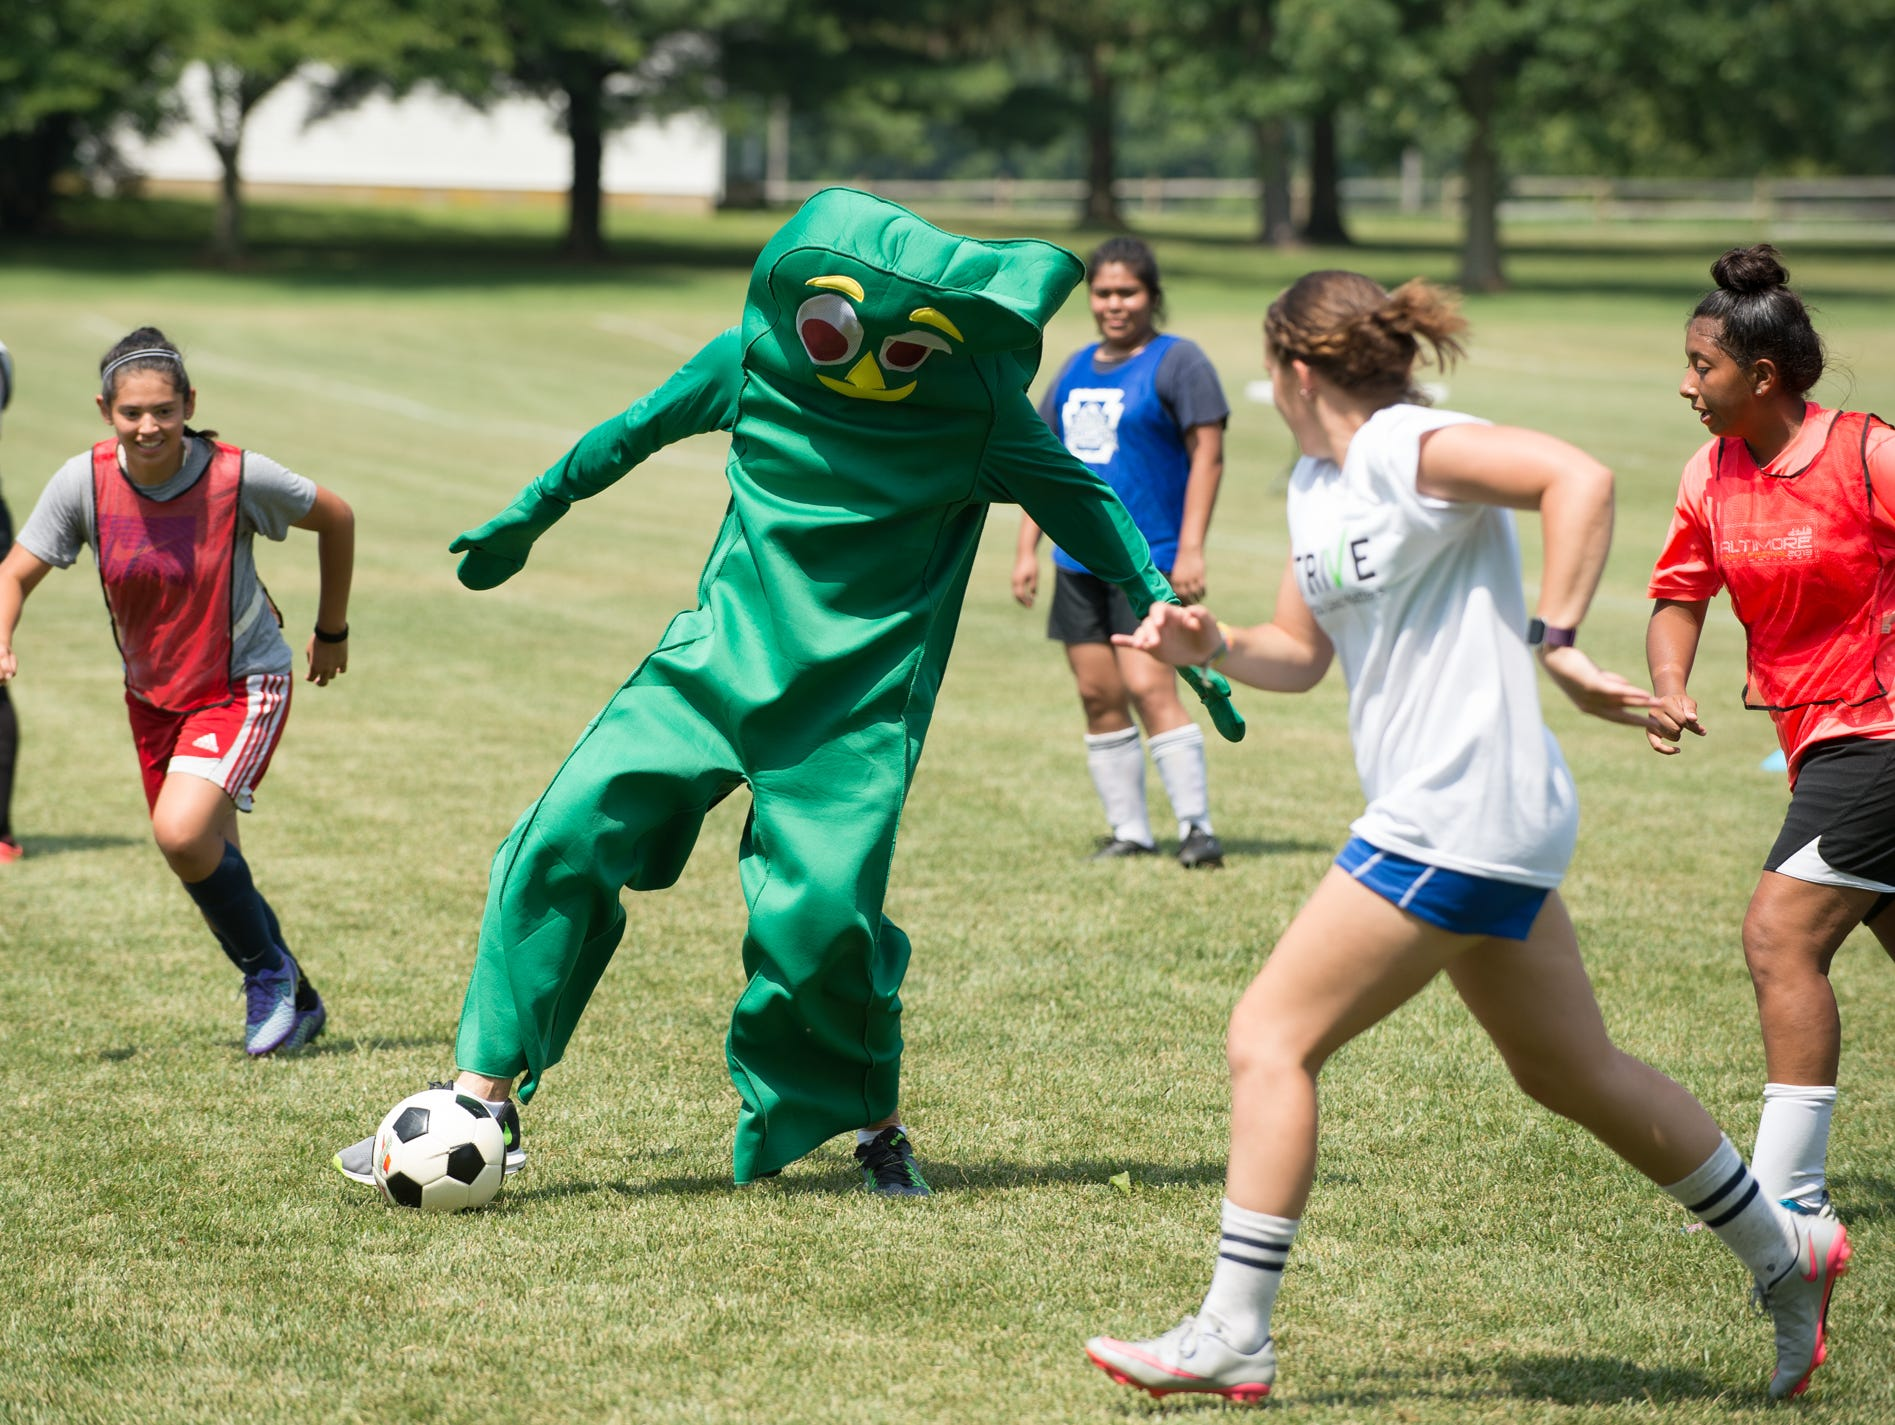 Jeremy Edwards, co-founder of Strive, plays soccer dressed as Gumby at St. Andrew's School in Middletown, Del,.